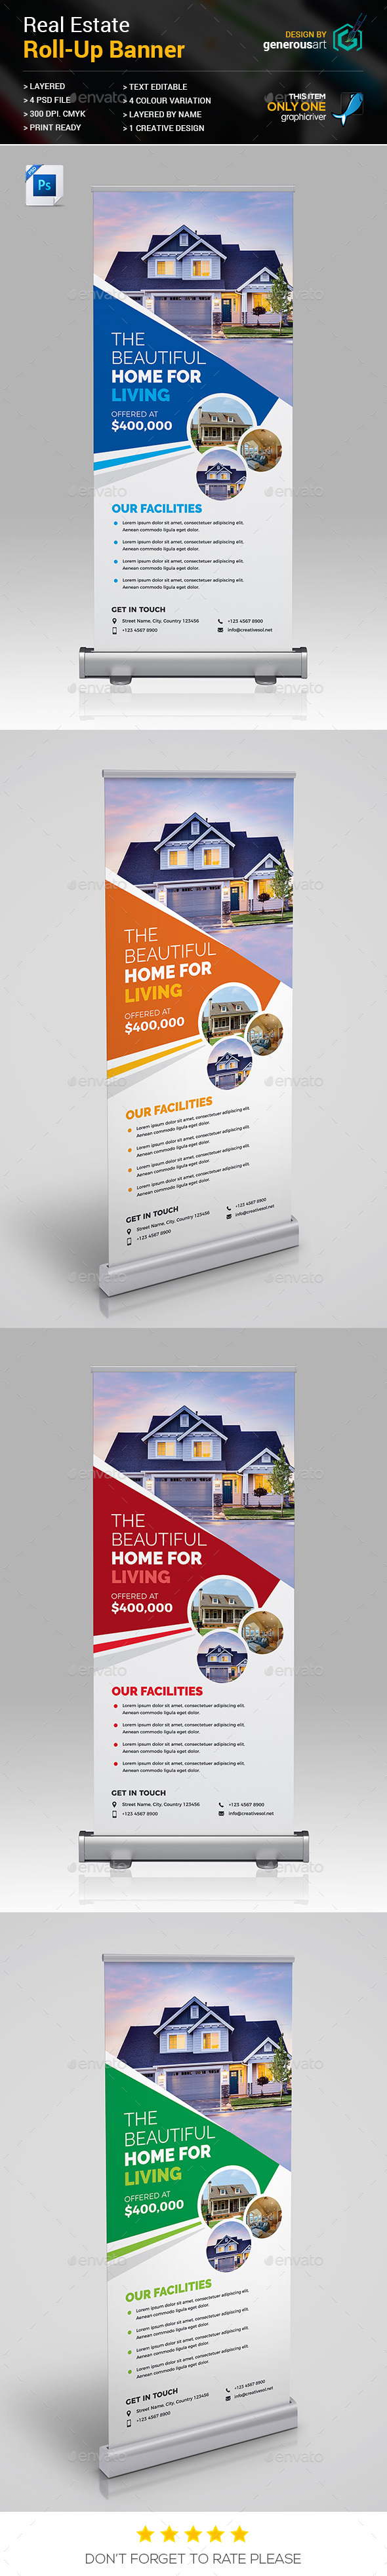 Real Estate Roll-up Banners - Signage Print Templates